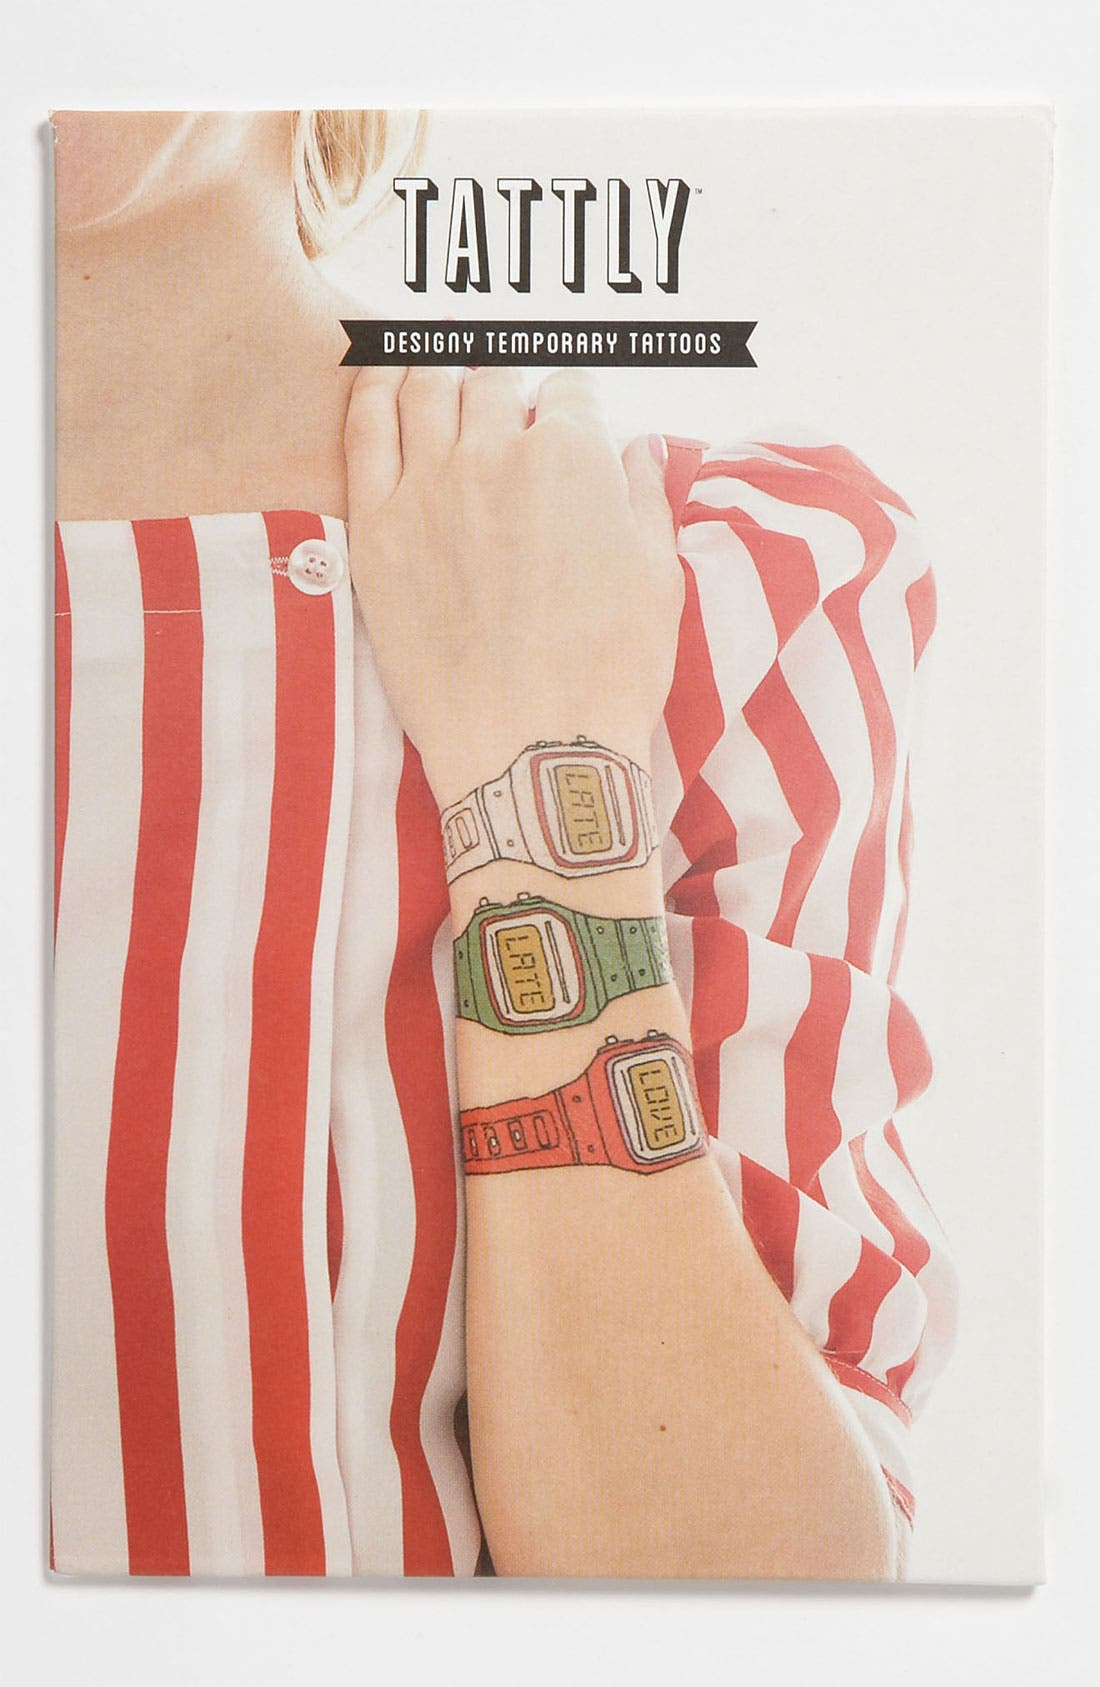 Alternate Image 1 Selected - Tattly 'Watch' Temporary Tattoo Set (Girls)